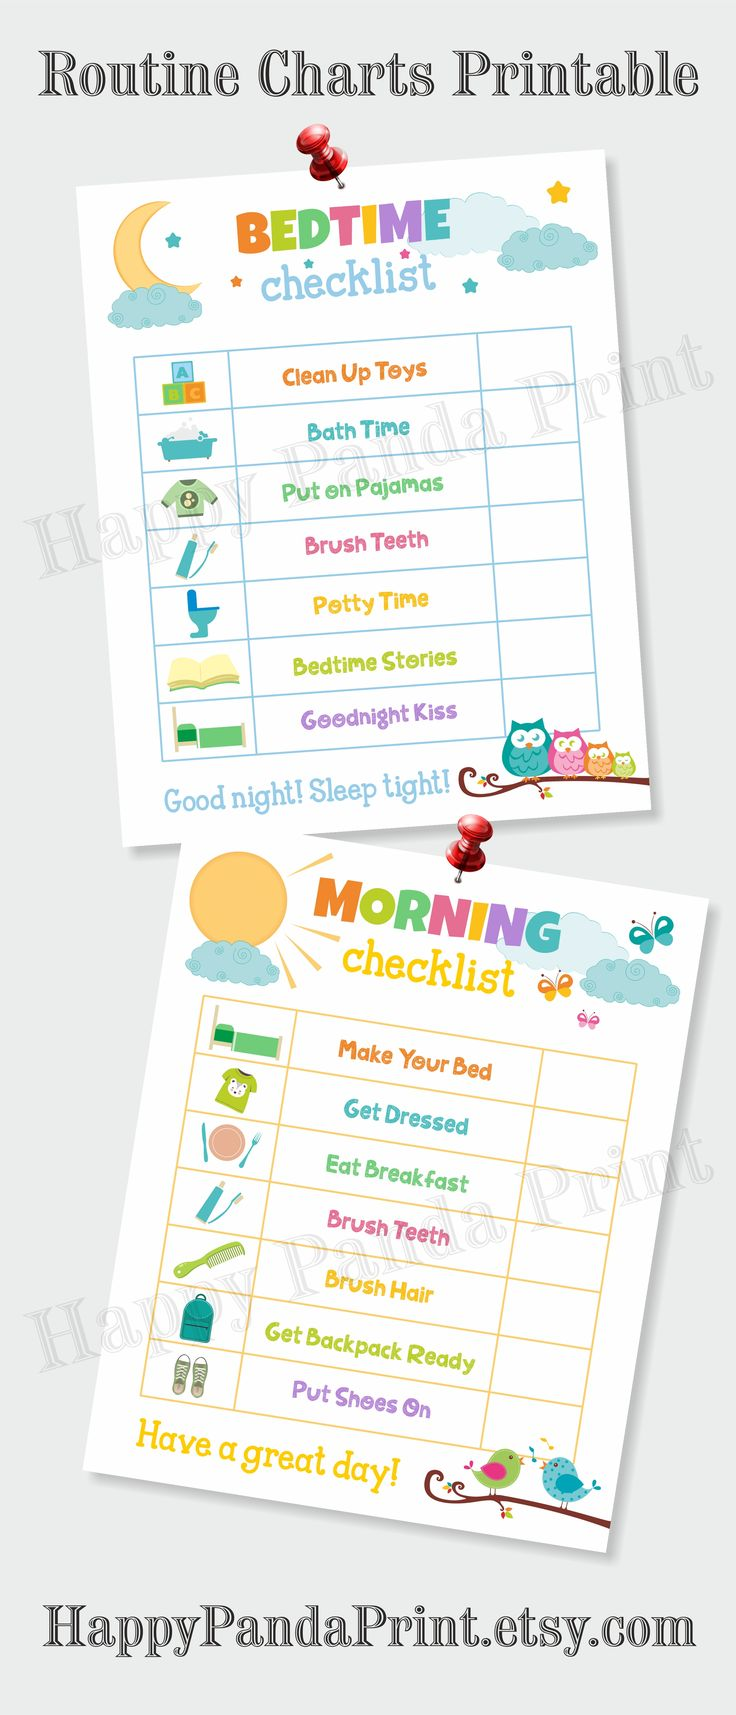 MORNING AND BEDTIME Checklist Printable, Morning Routine Checklist, Bedtime Routine Checklist, Morning Chart, Bedtime Chart, Kids Chart, To Do List, Organizational Printables, Kids Organizational Prints, Routine Charts